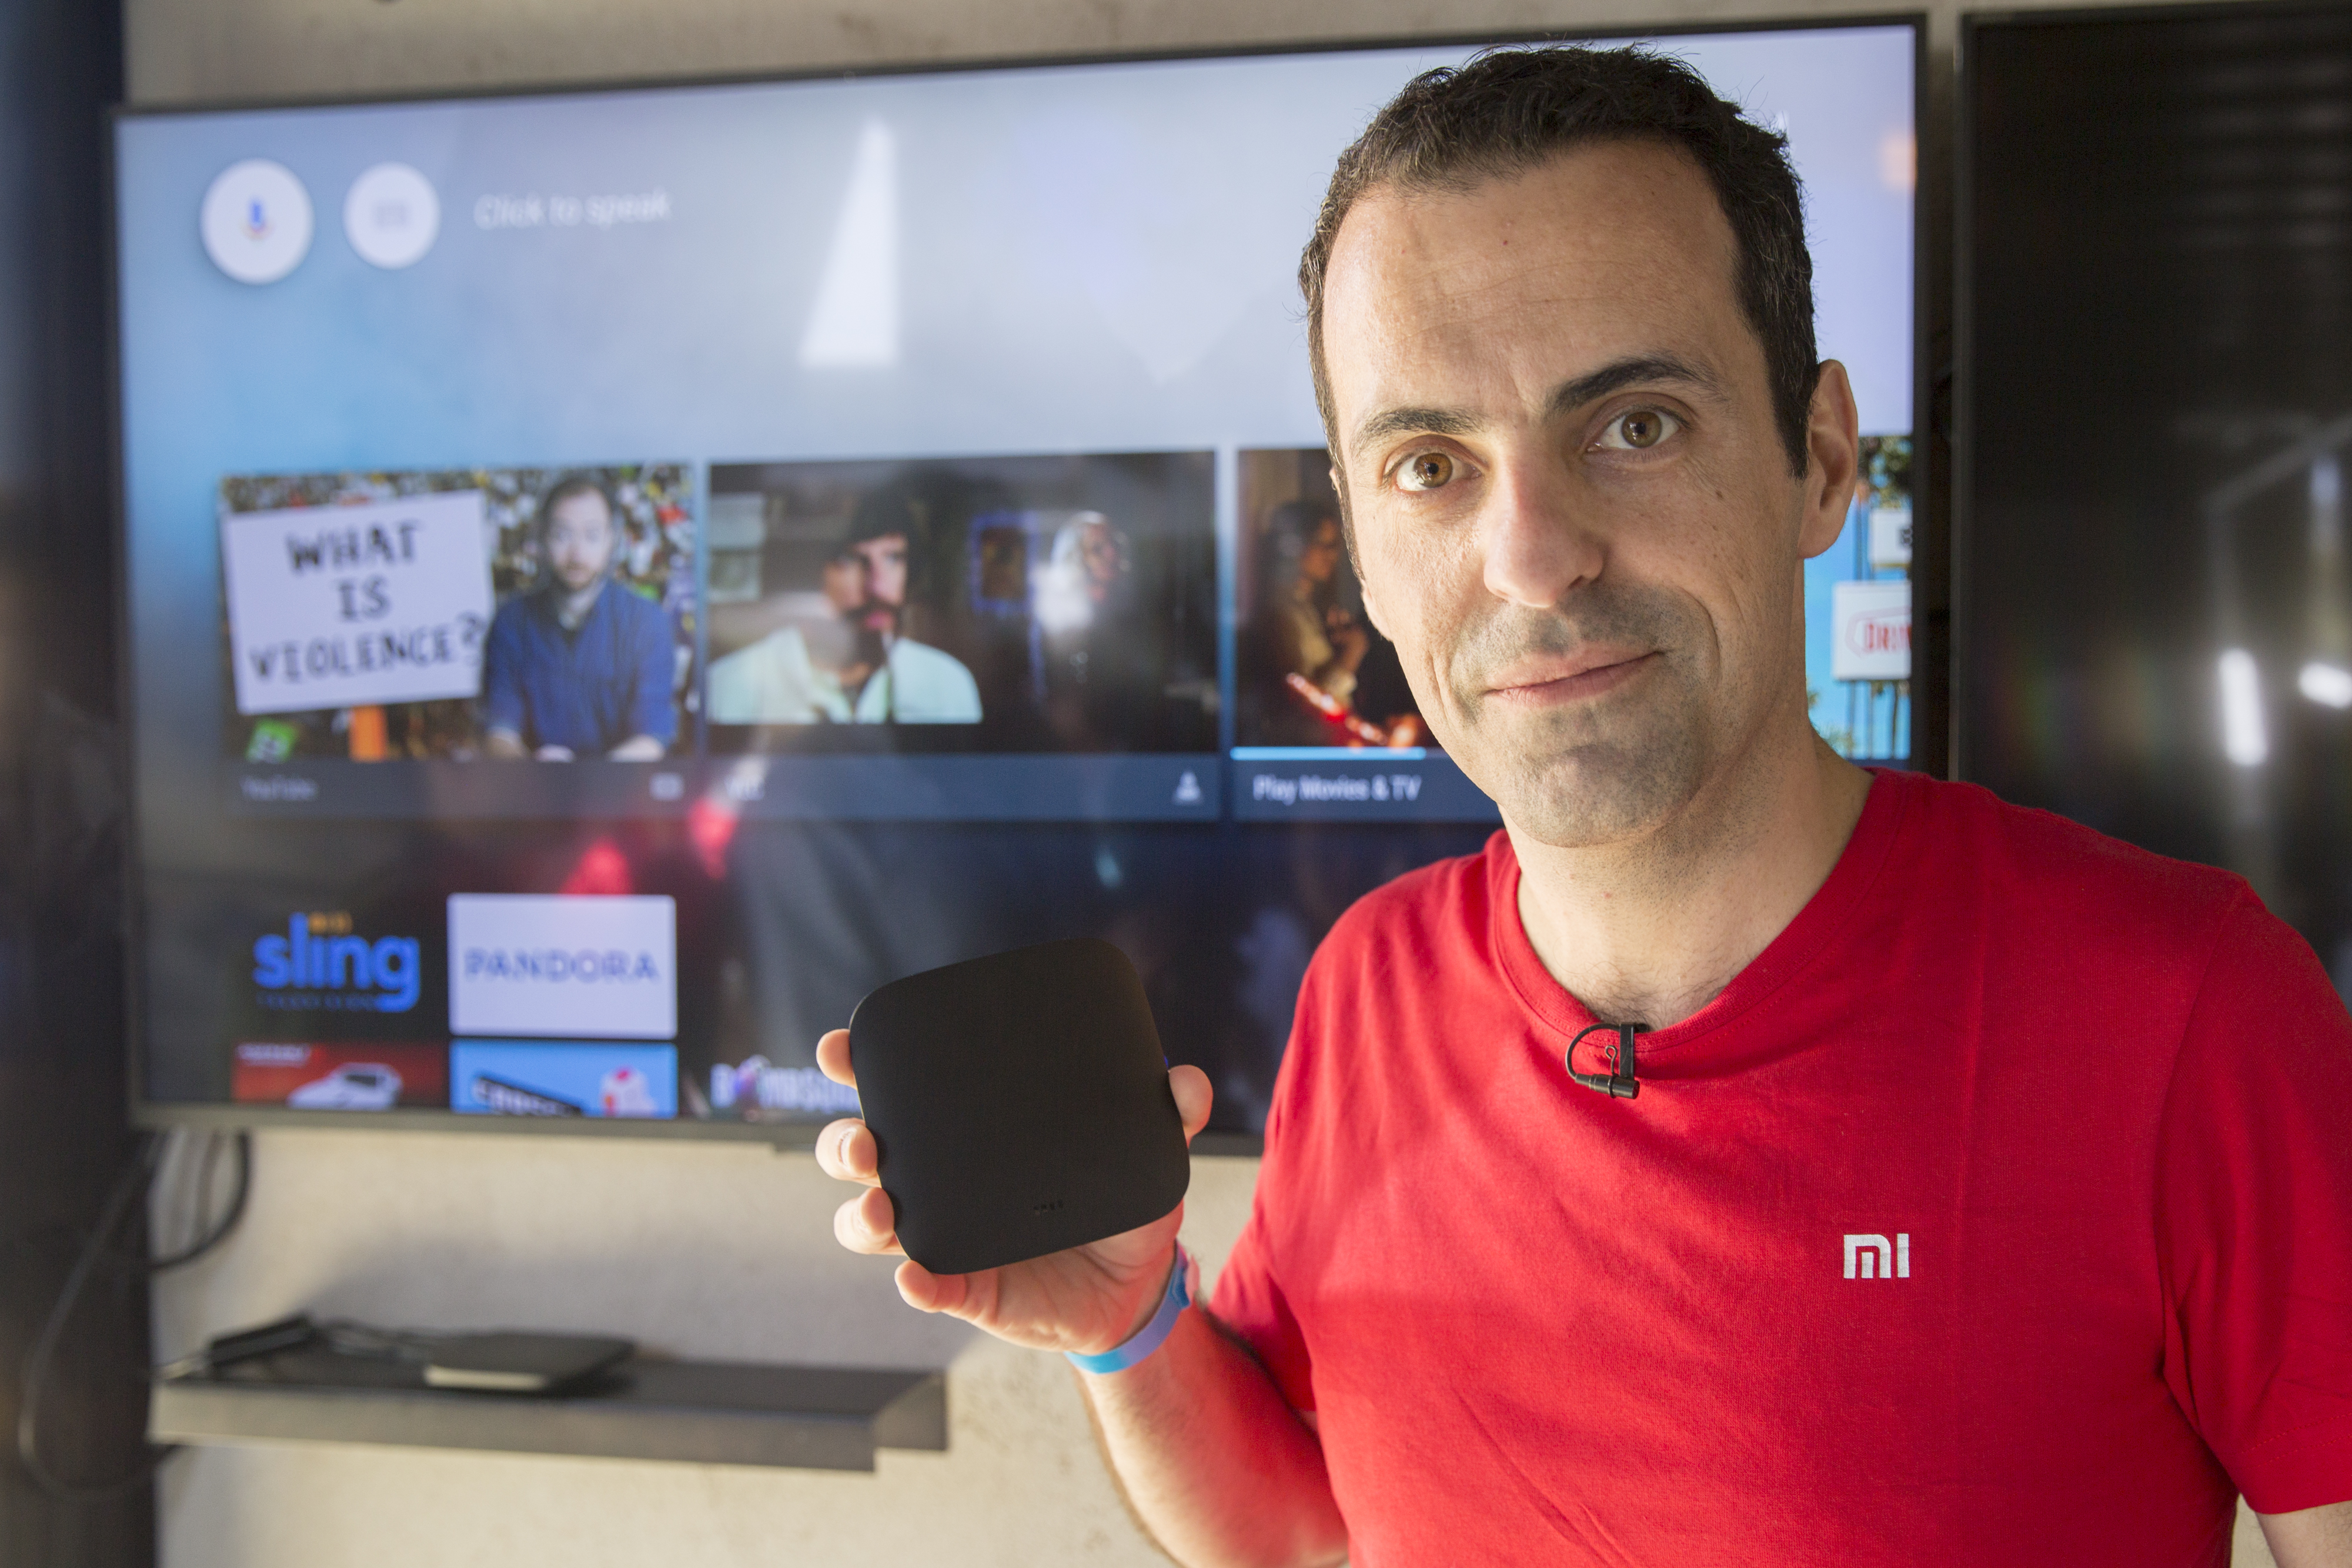 google-io-2016-hugo-barra-xiaomi-mi-set-top-android-tv-box-8854.jpg